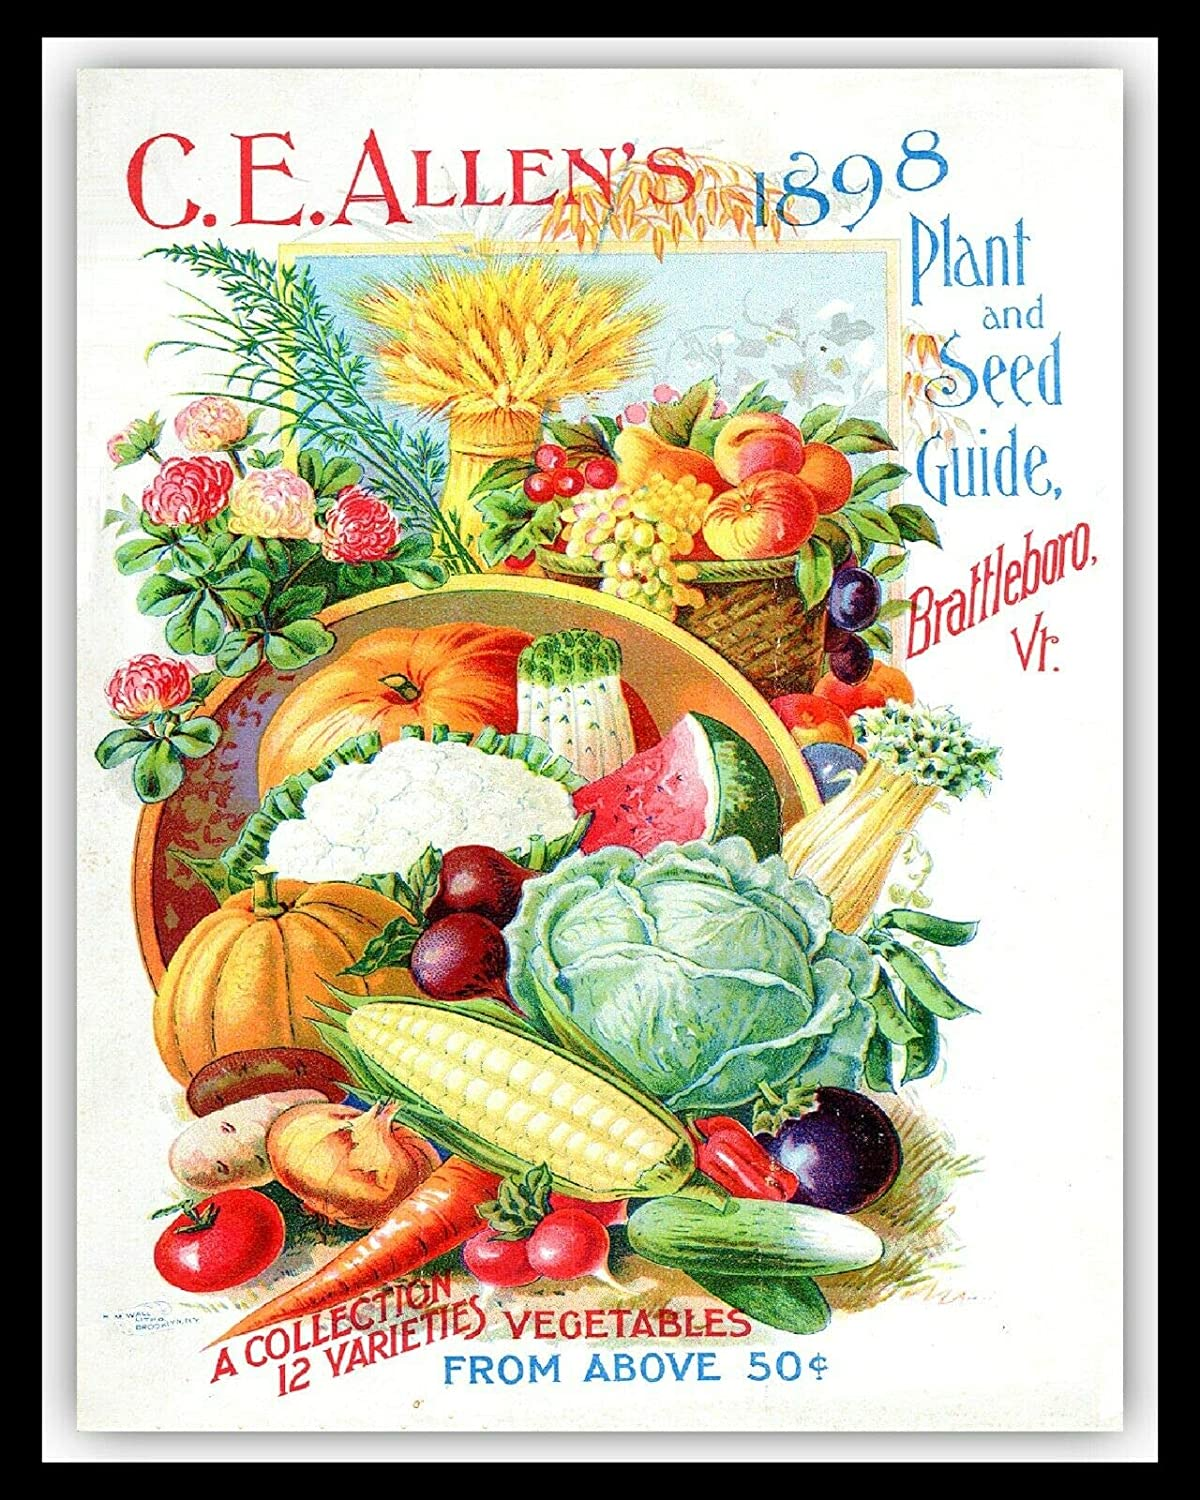 nobrand Vintage Farm C.E.A Llen's 1898 Plant and Seed Guide Brat